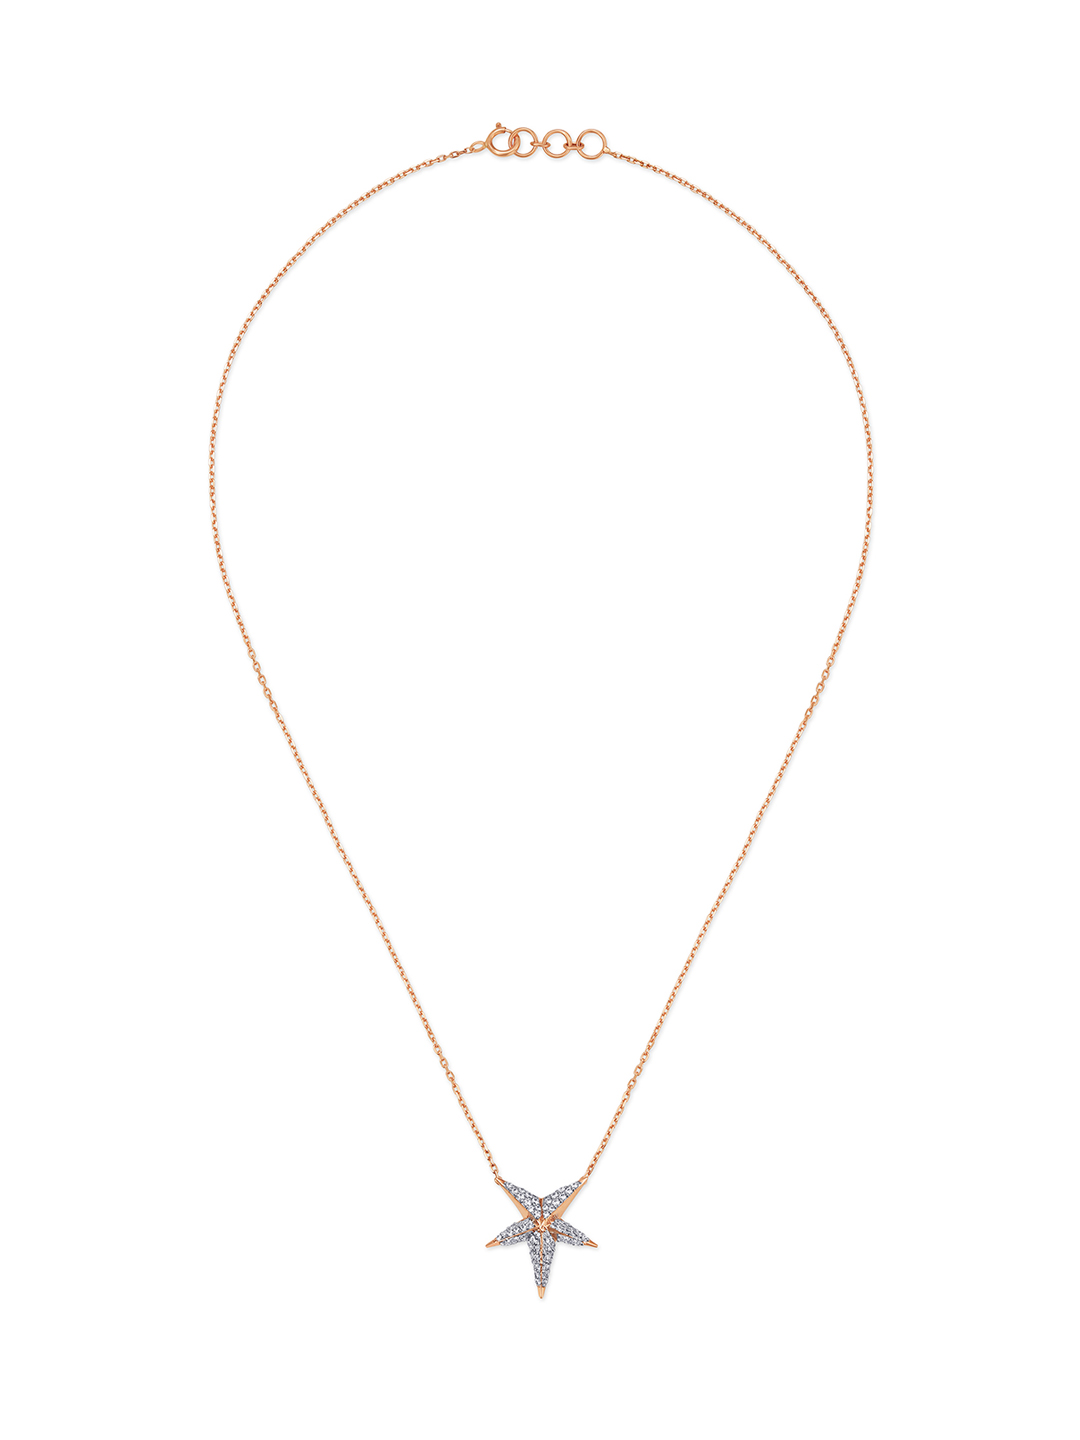 Mia Glam by Tanishq 14-Karat Rose Gold Cubic Zirconia Neckwear with Star Design Price in India